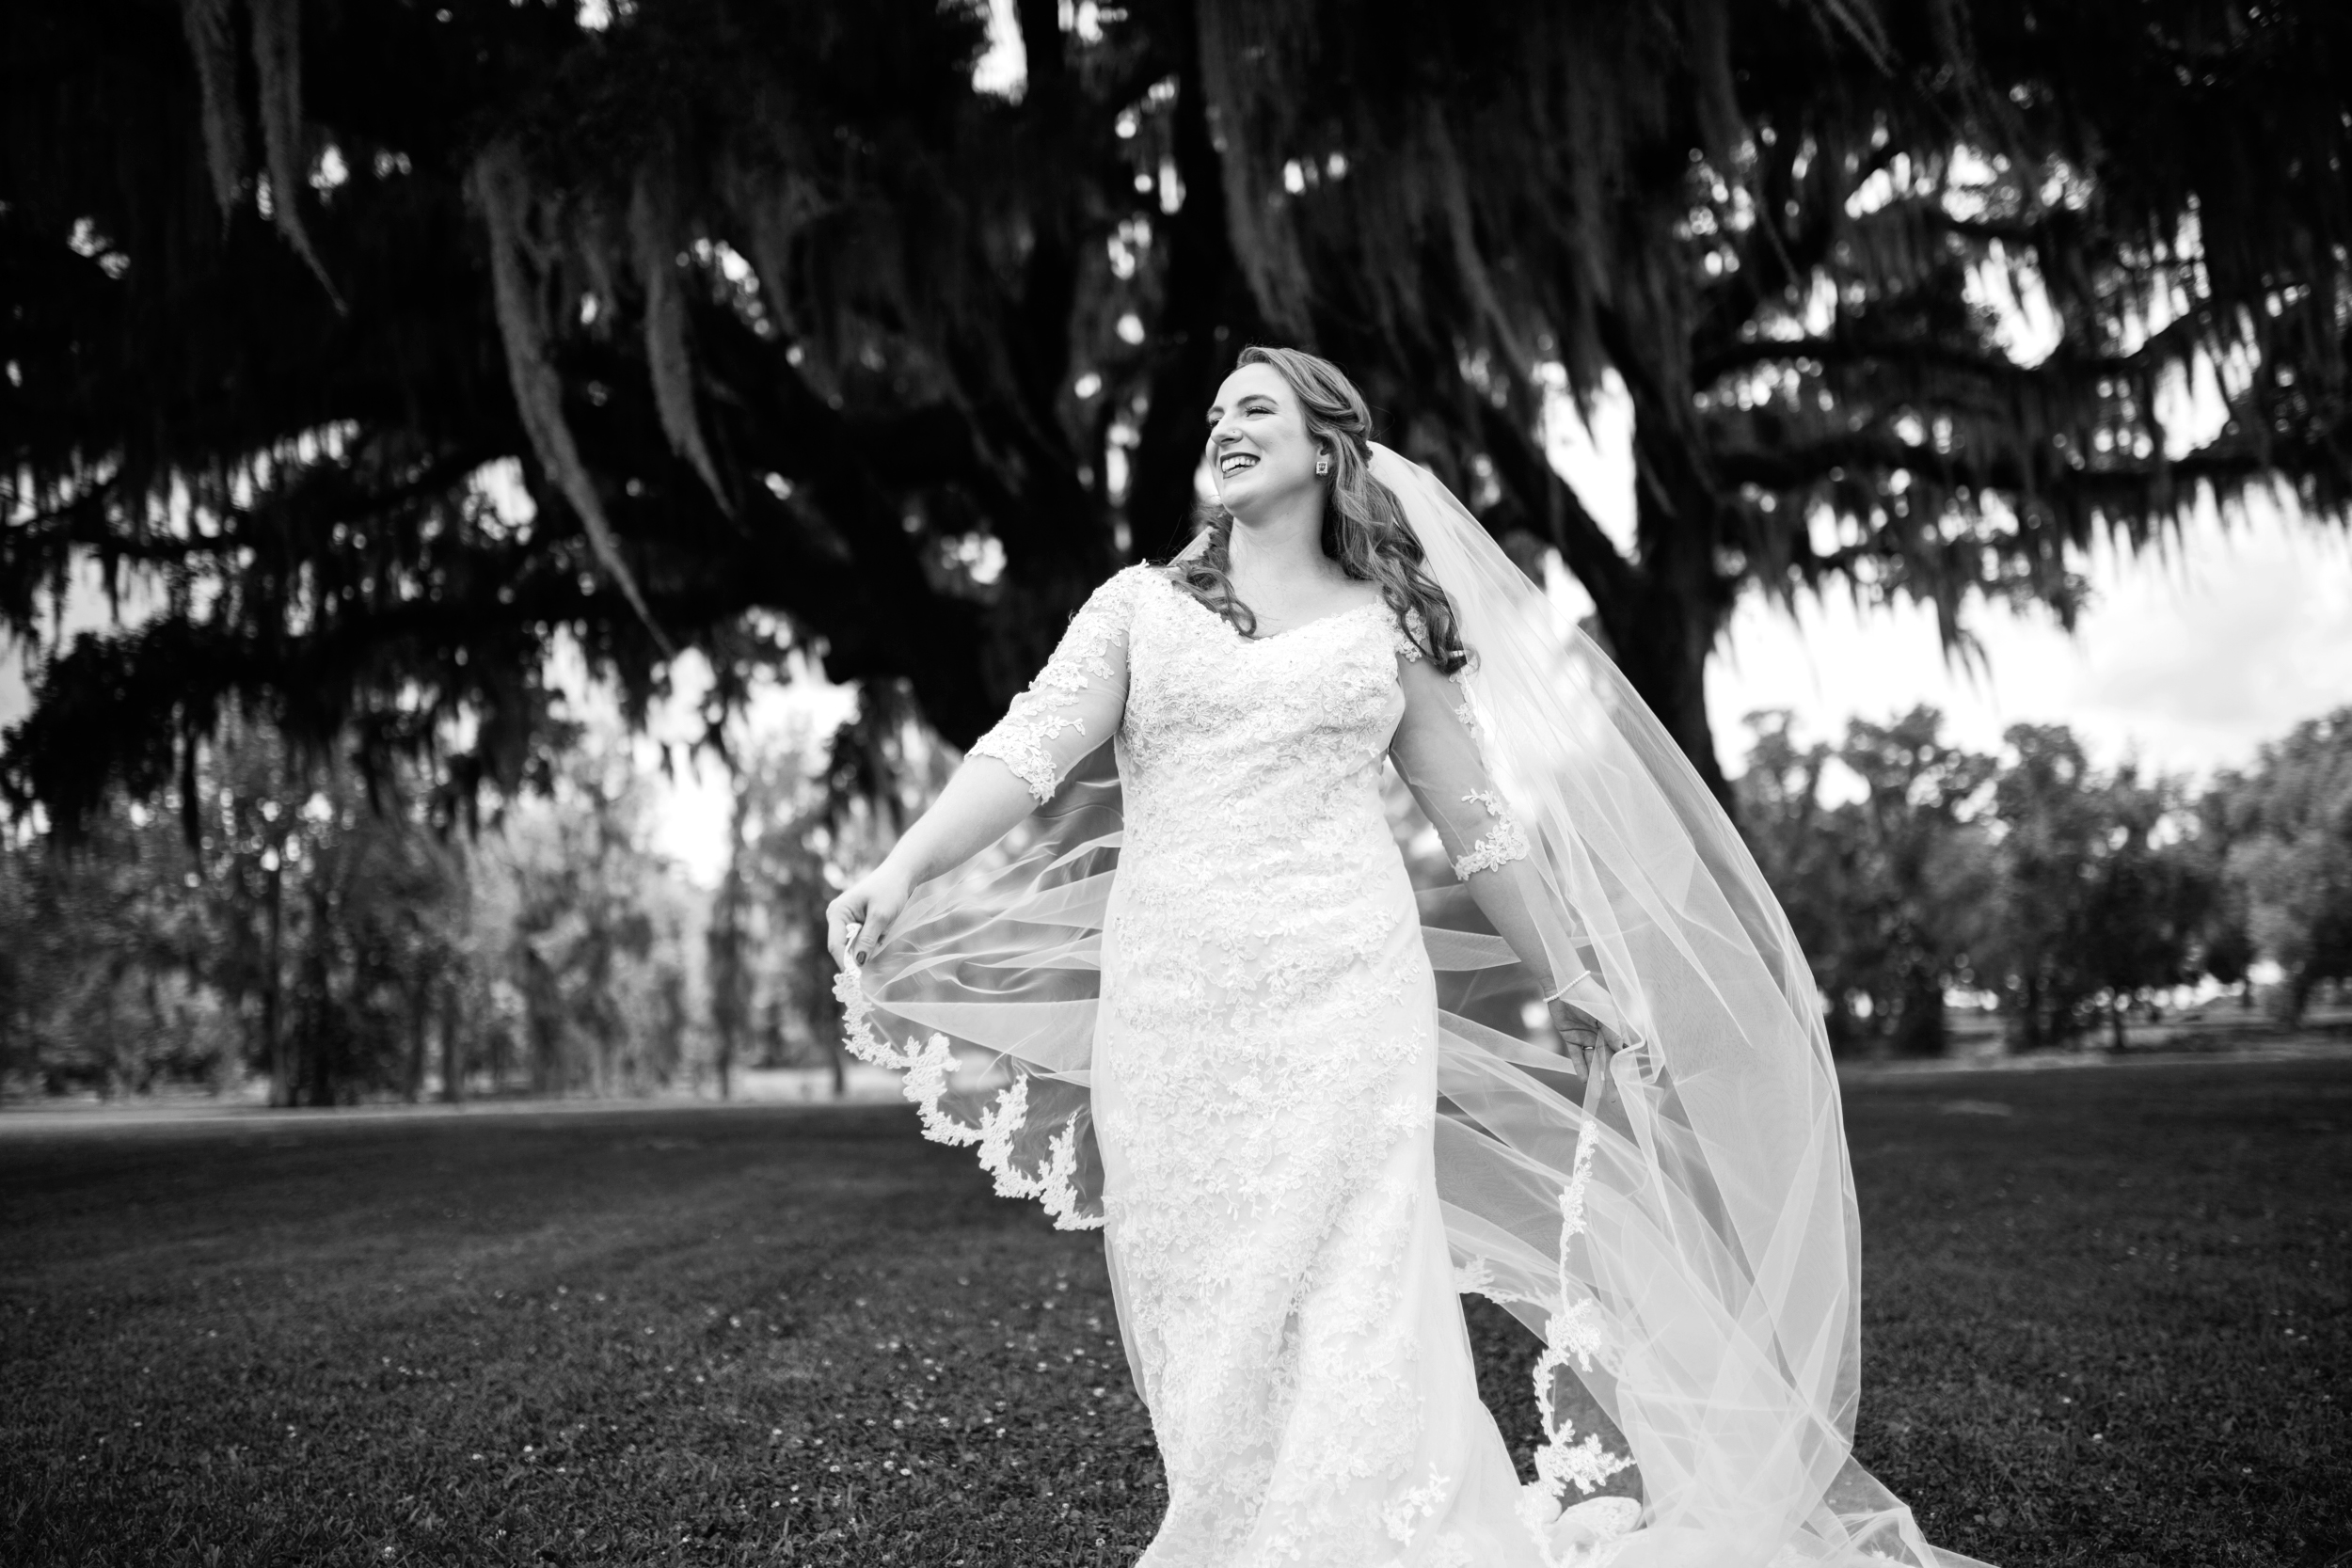 black and white photo of a bride standing outdoors with the wind blowing her veil